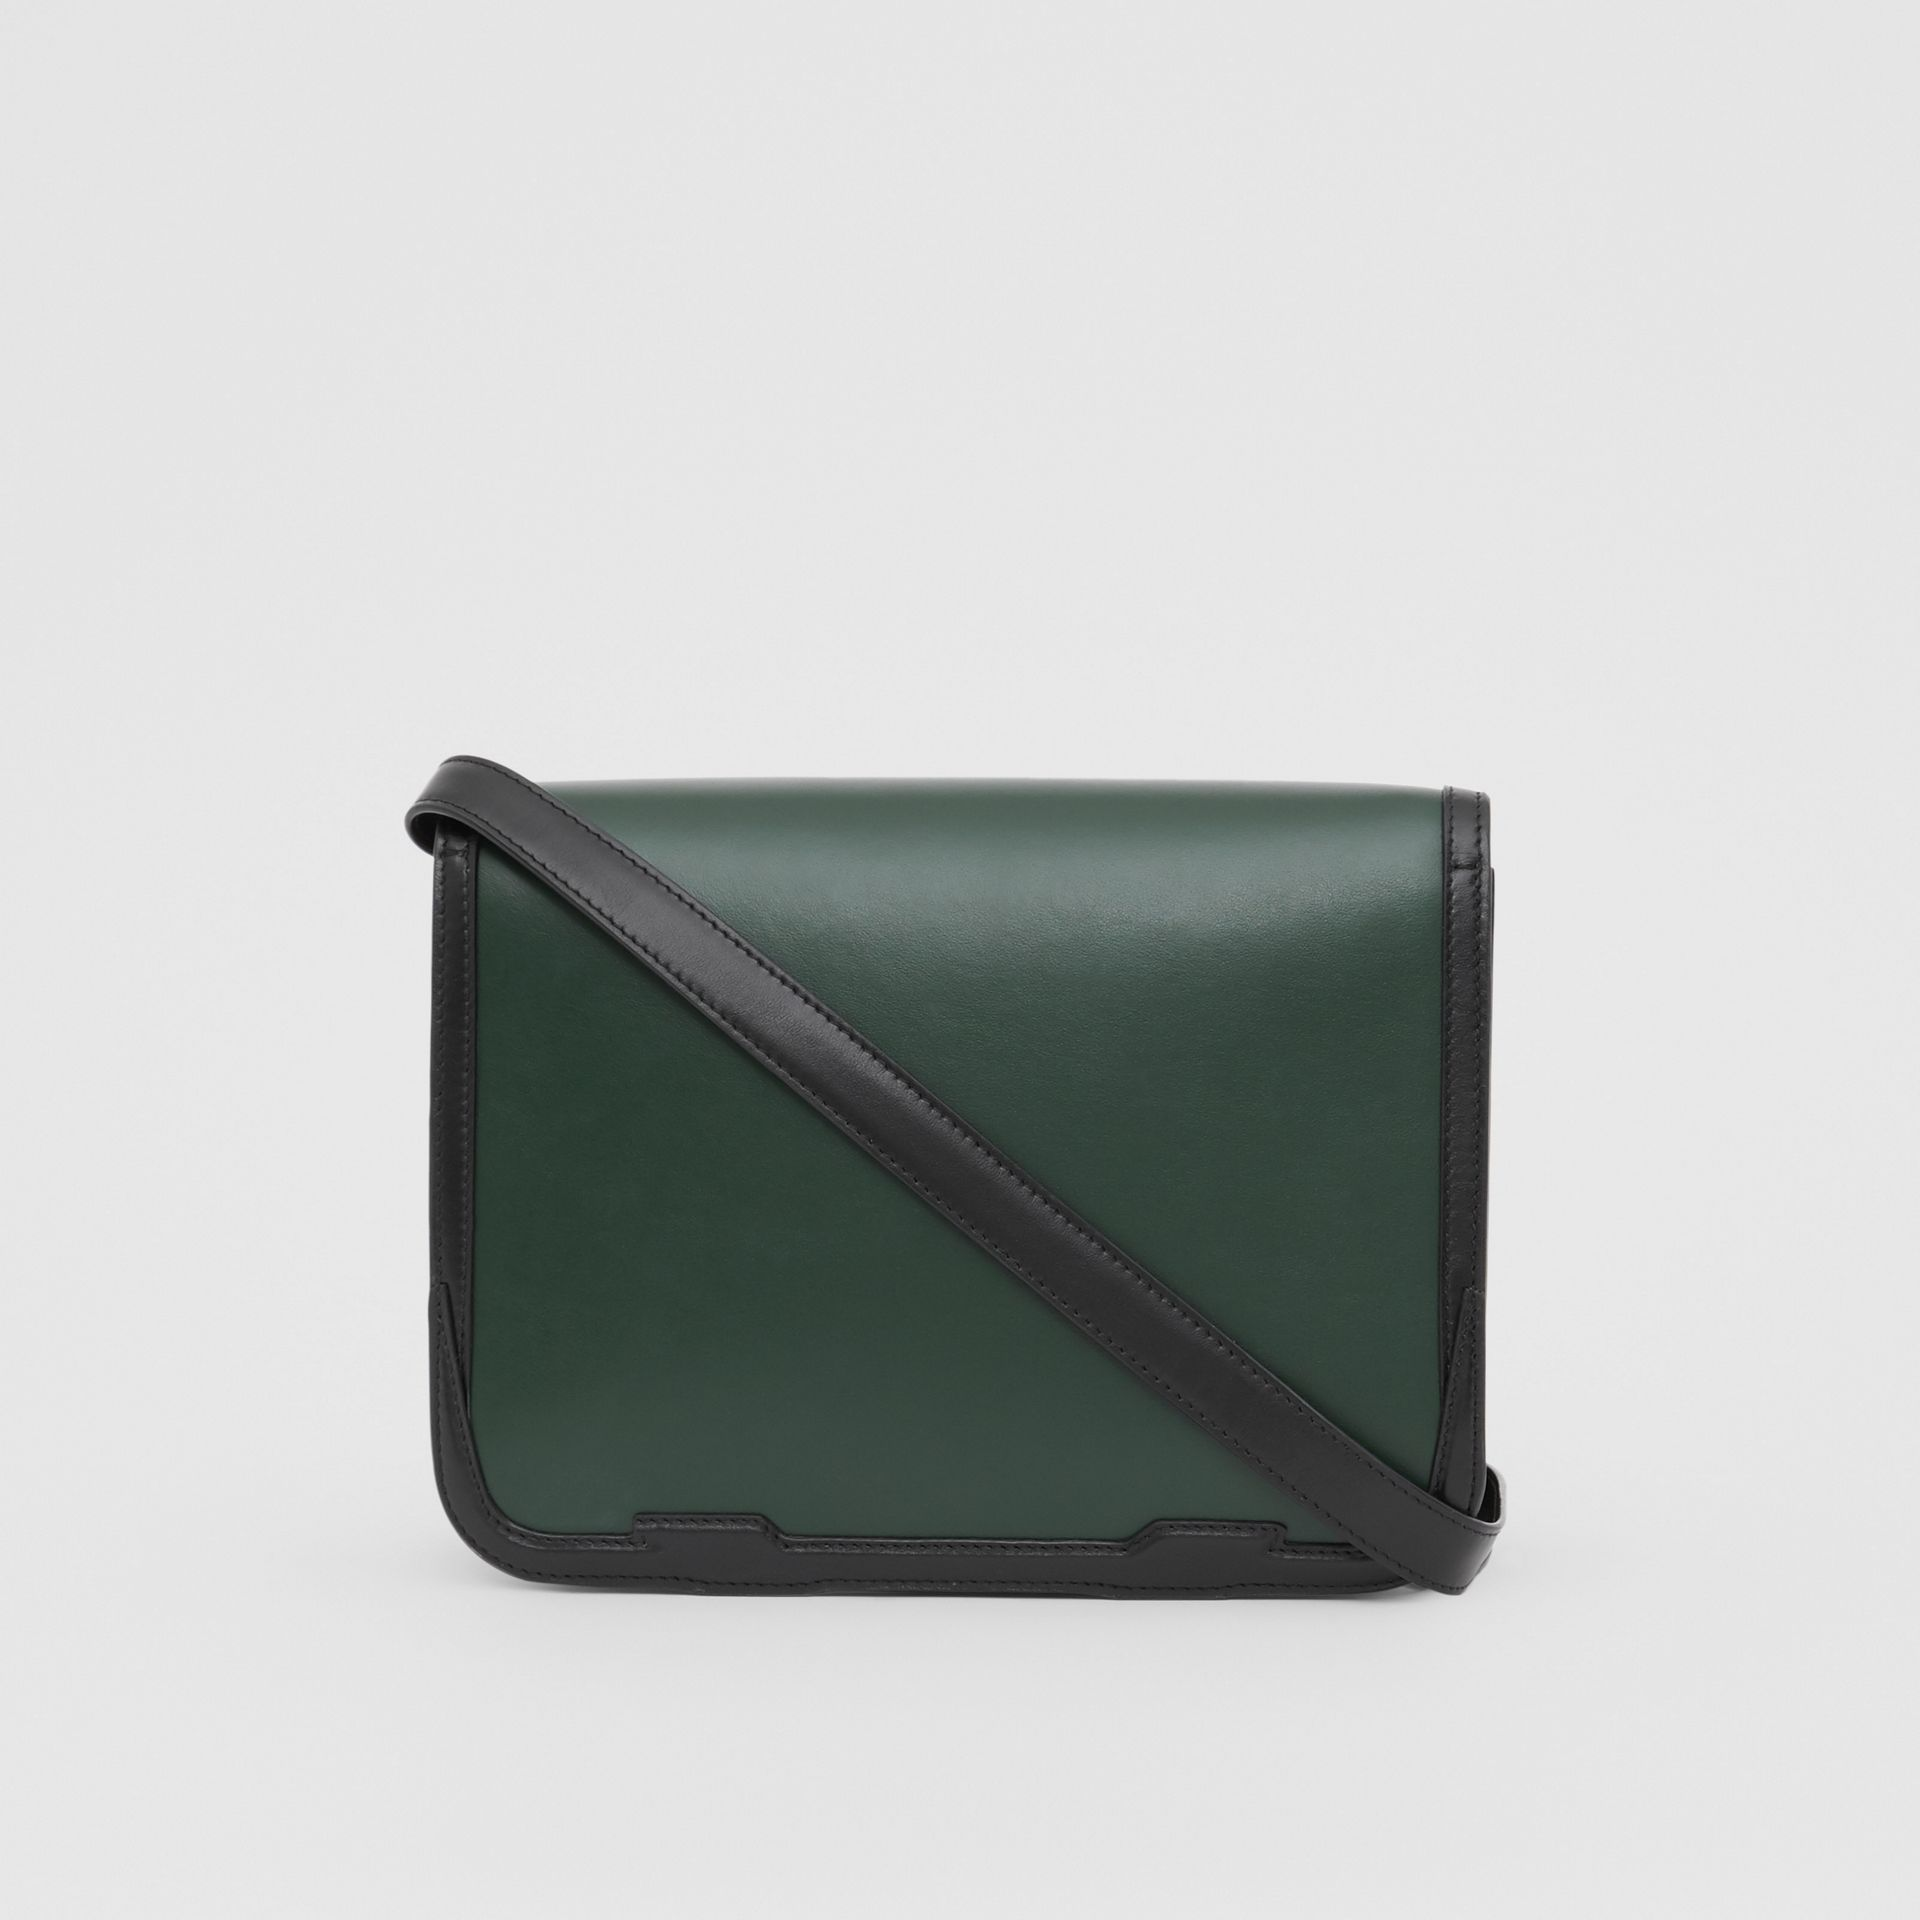 Medium Appliqué Leather TB Bag in Dark Pine Green - Women | Burberry United Kingdom - gallery image 5